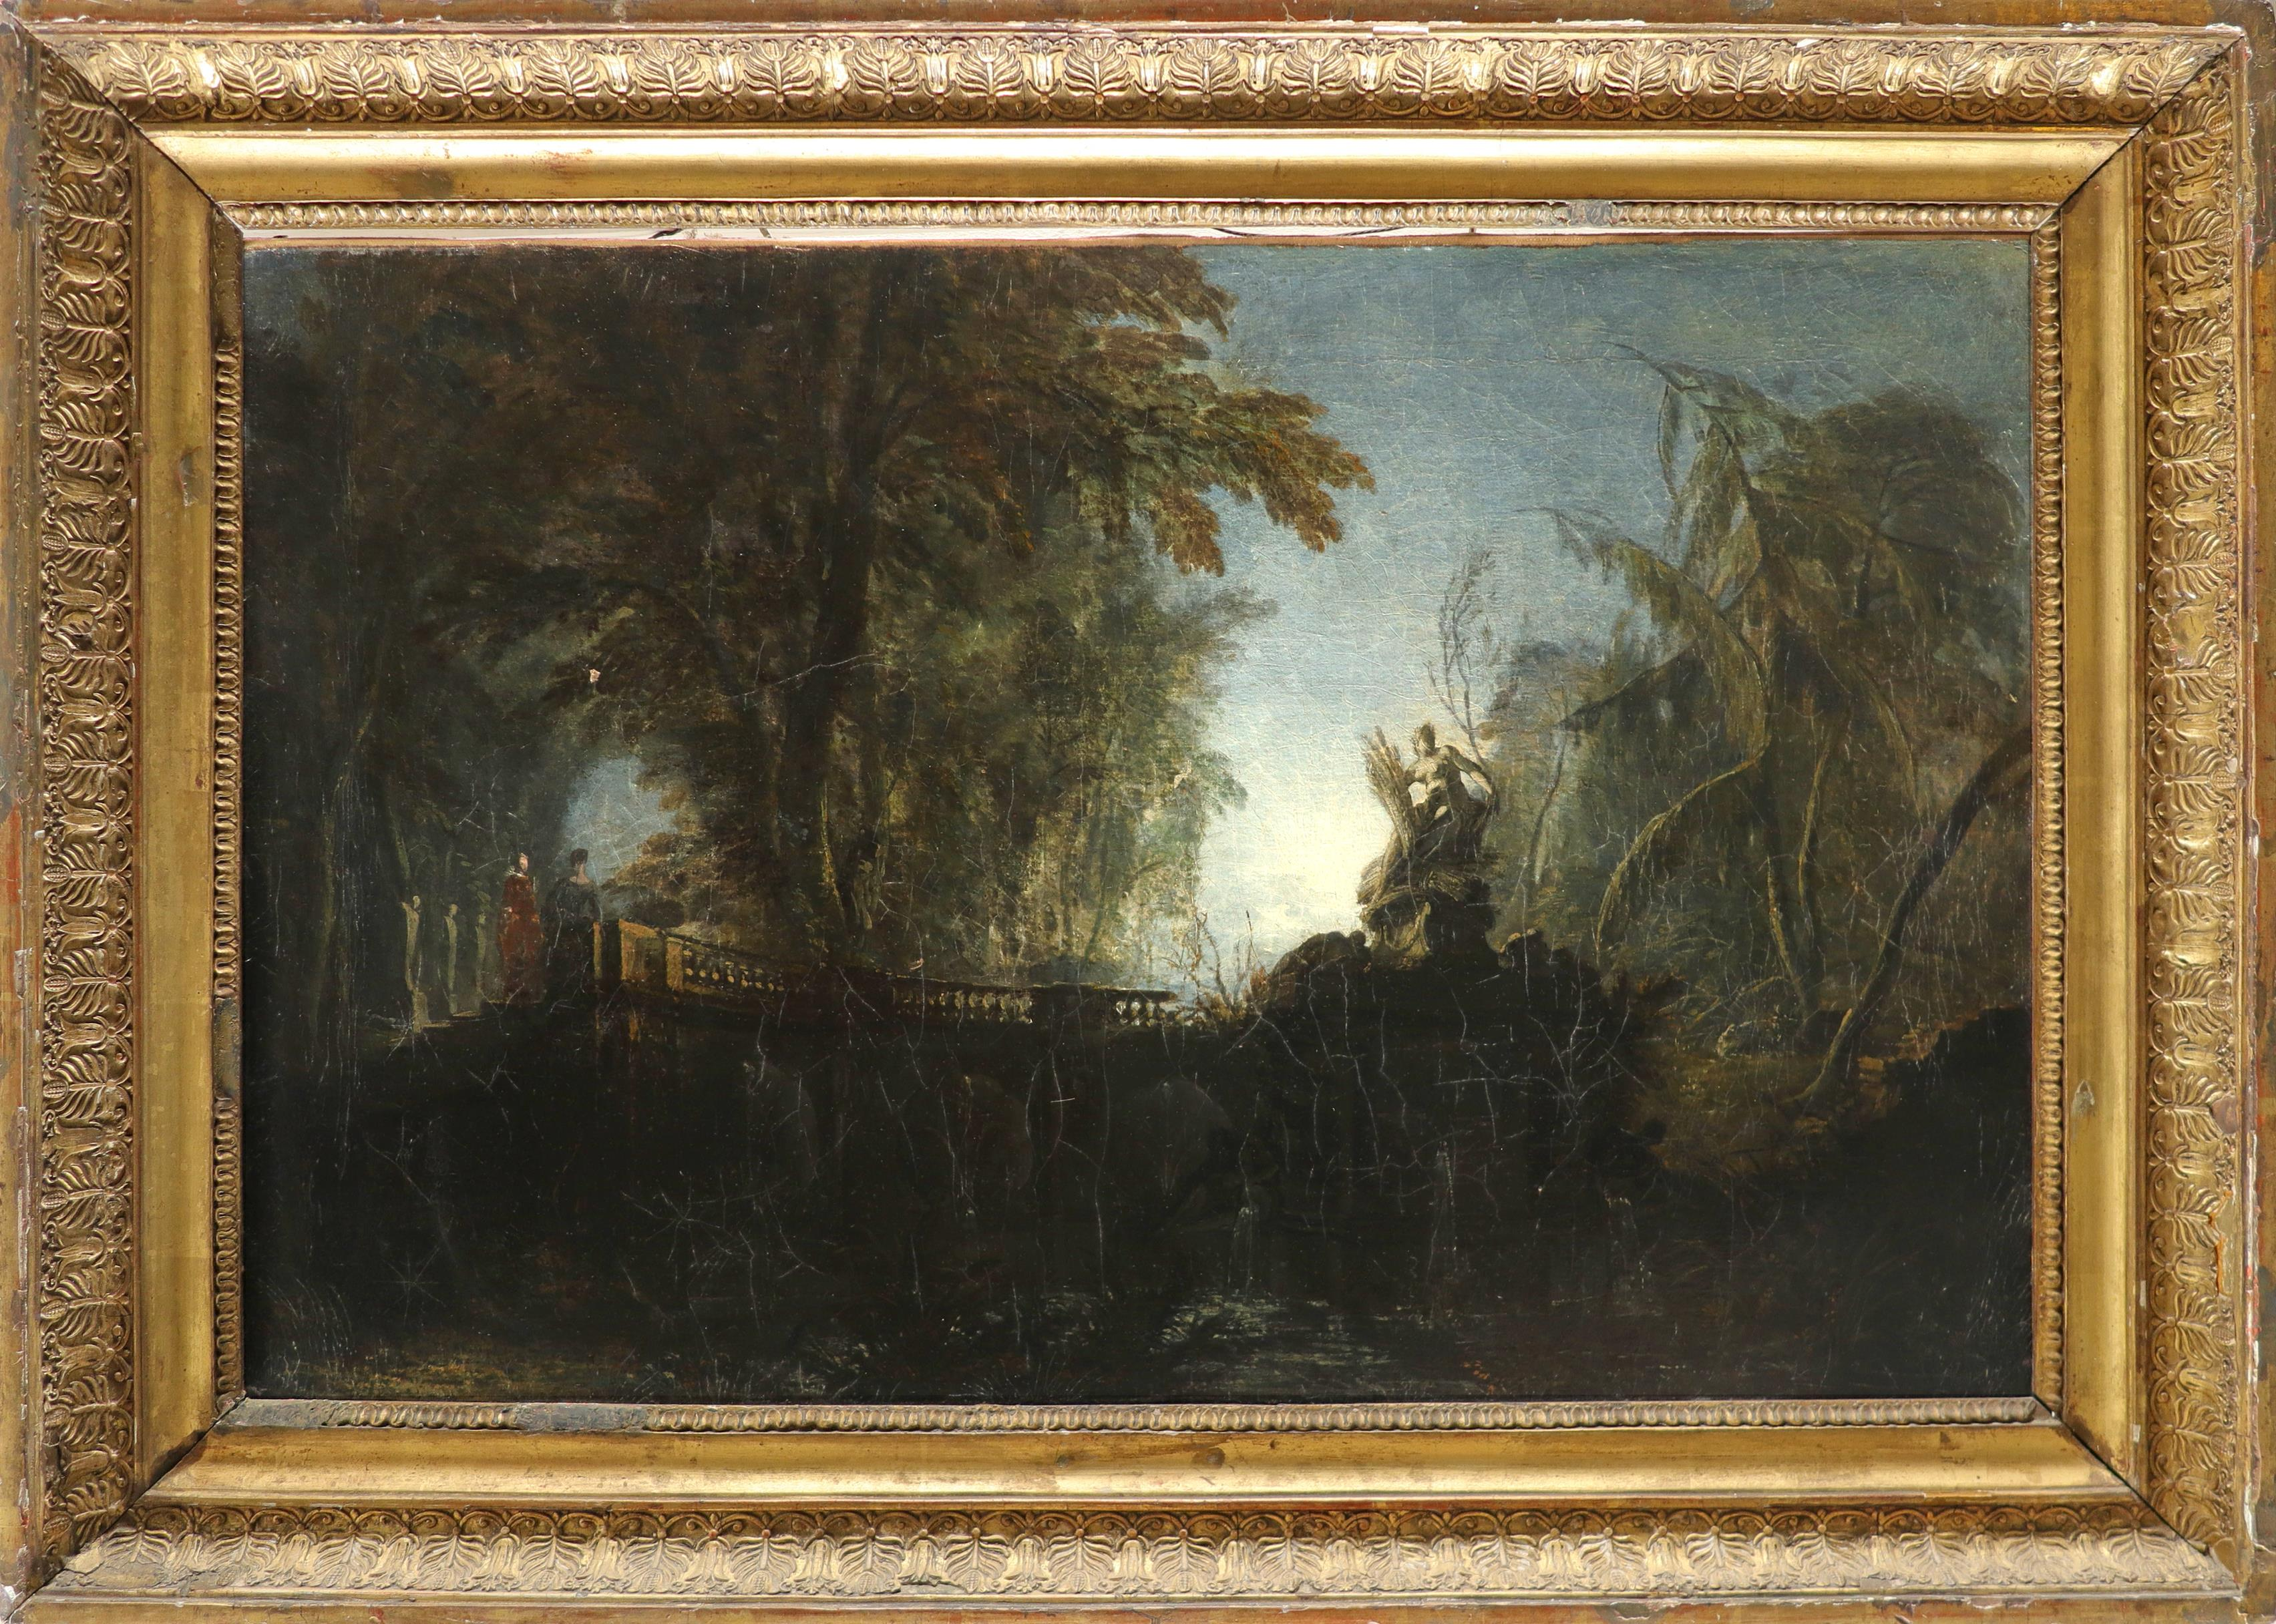 Attributed to Jacques de Lajoüe (French 1686-1761) Park landscape with figures on a bridge near a - Image 2 of 3